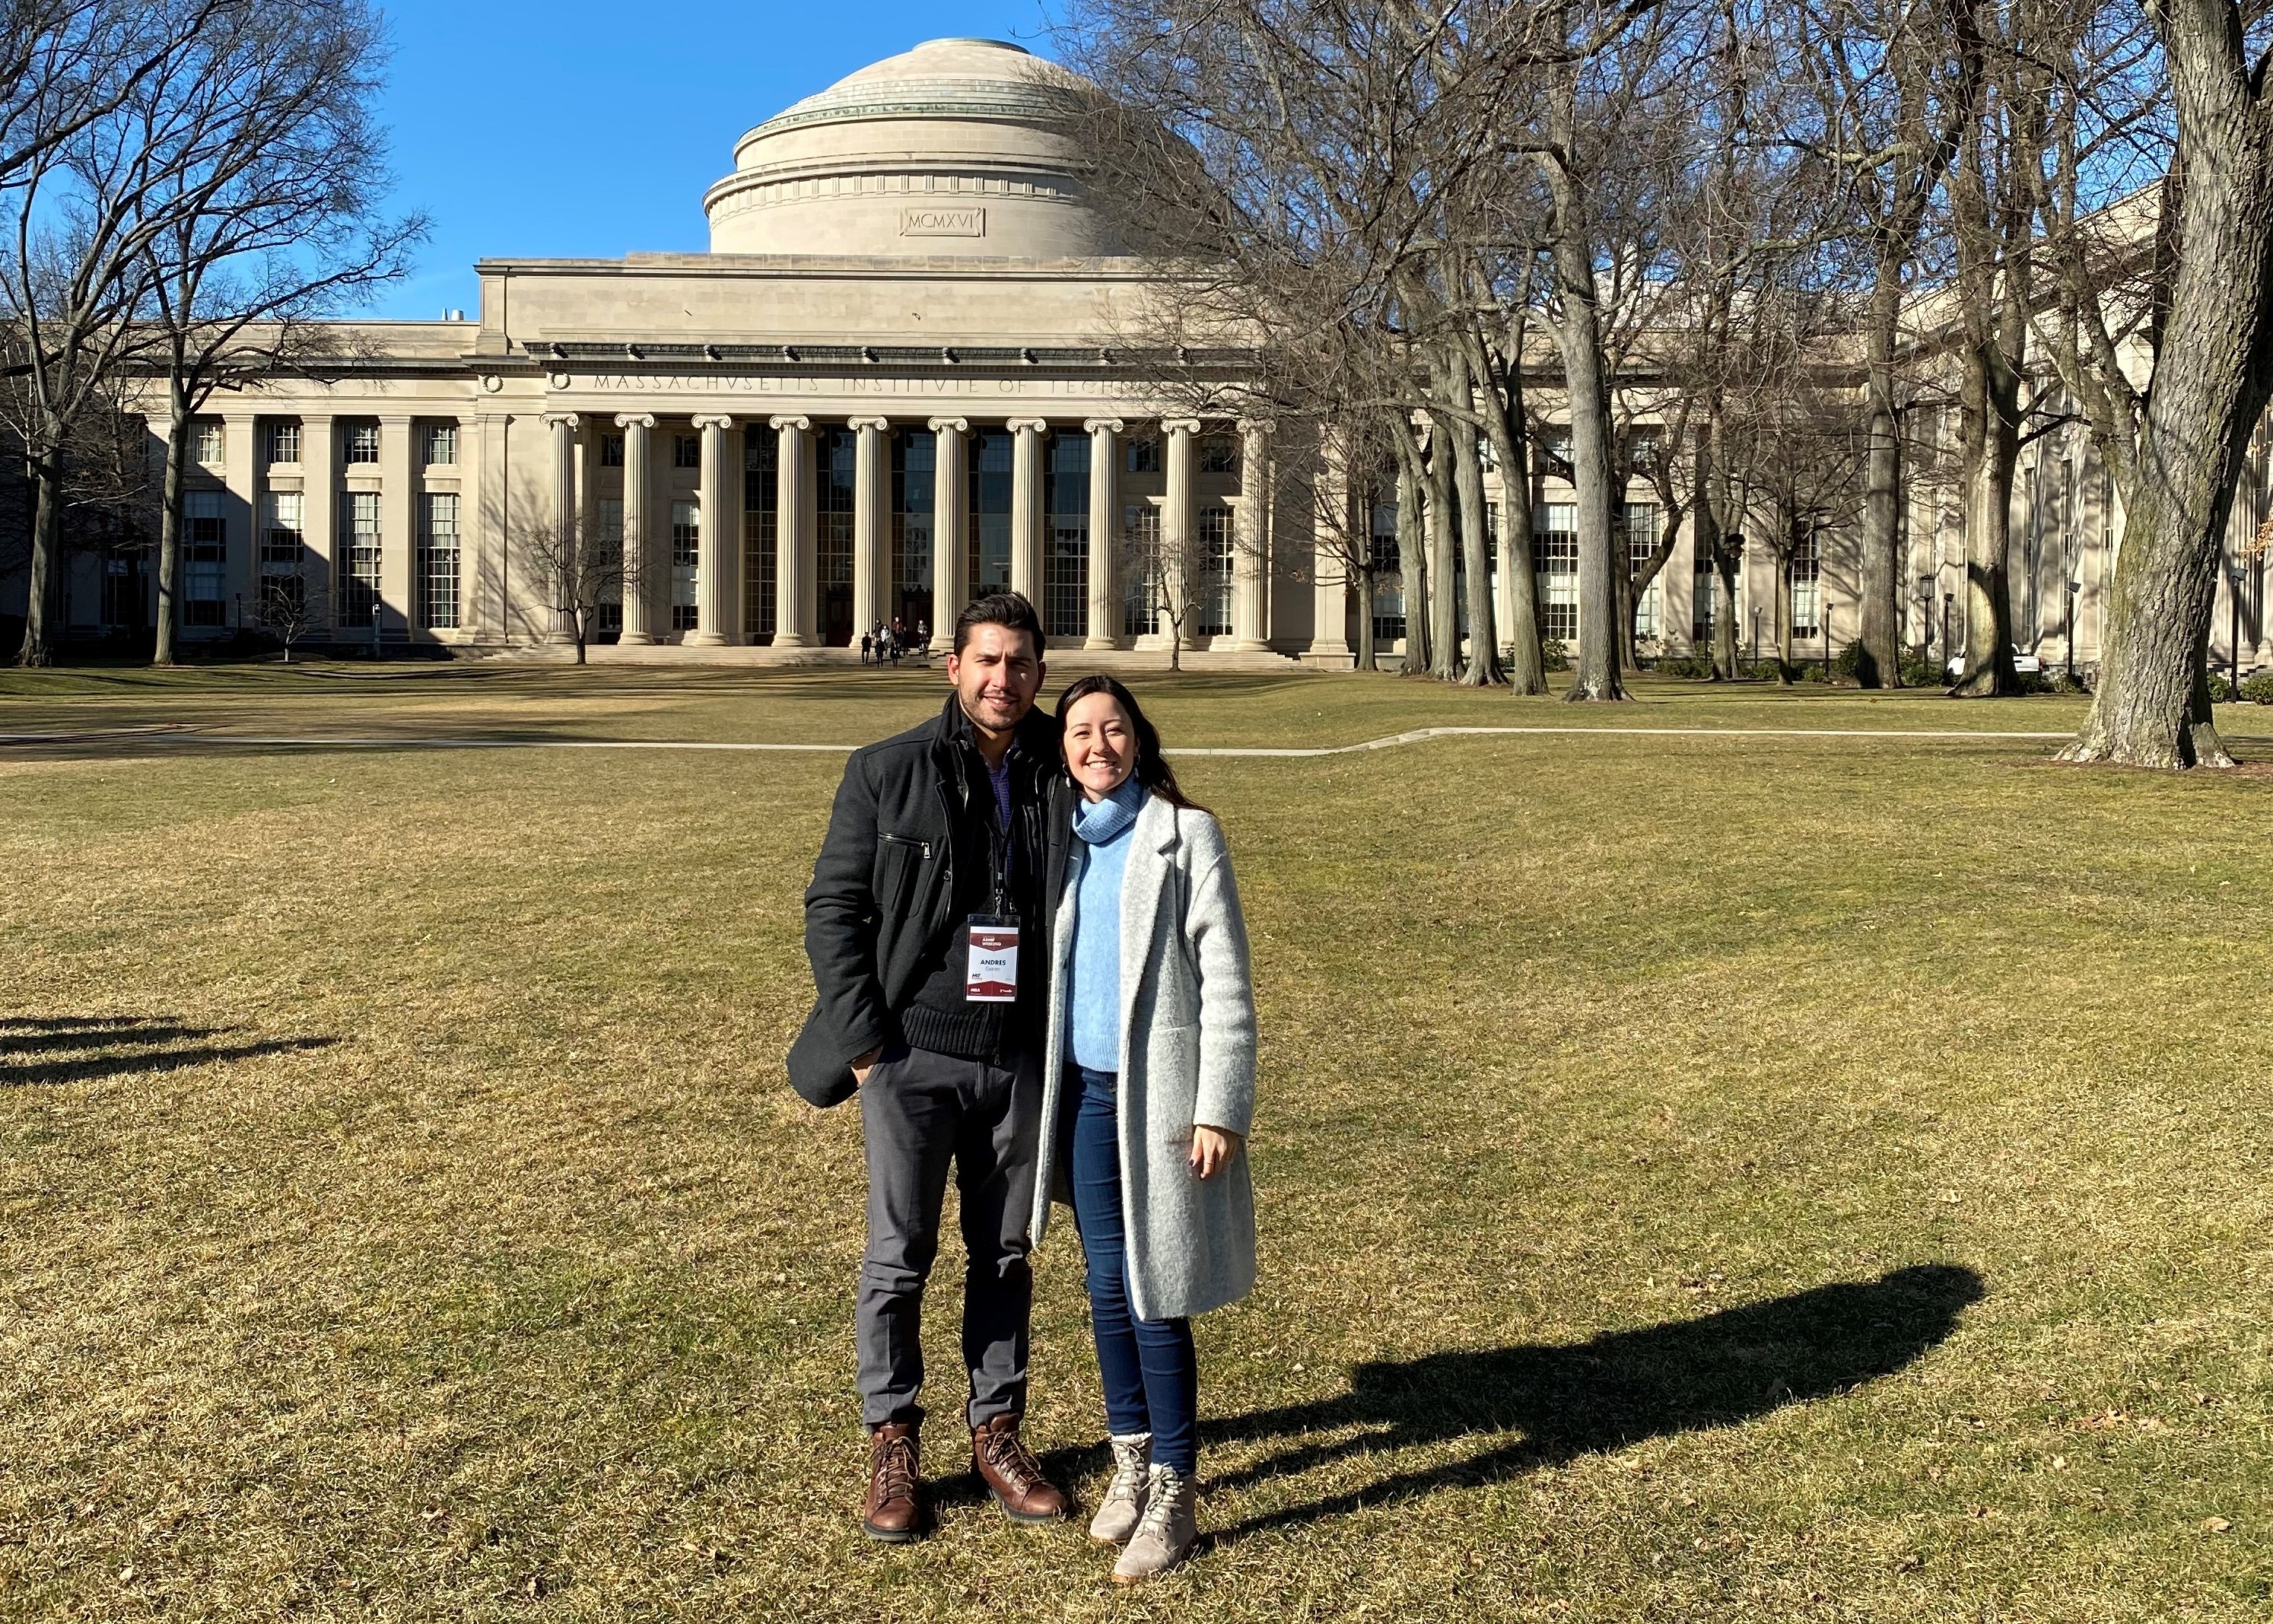 MBA student at MIT Sloan